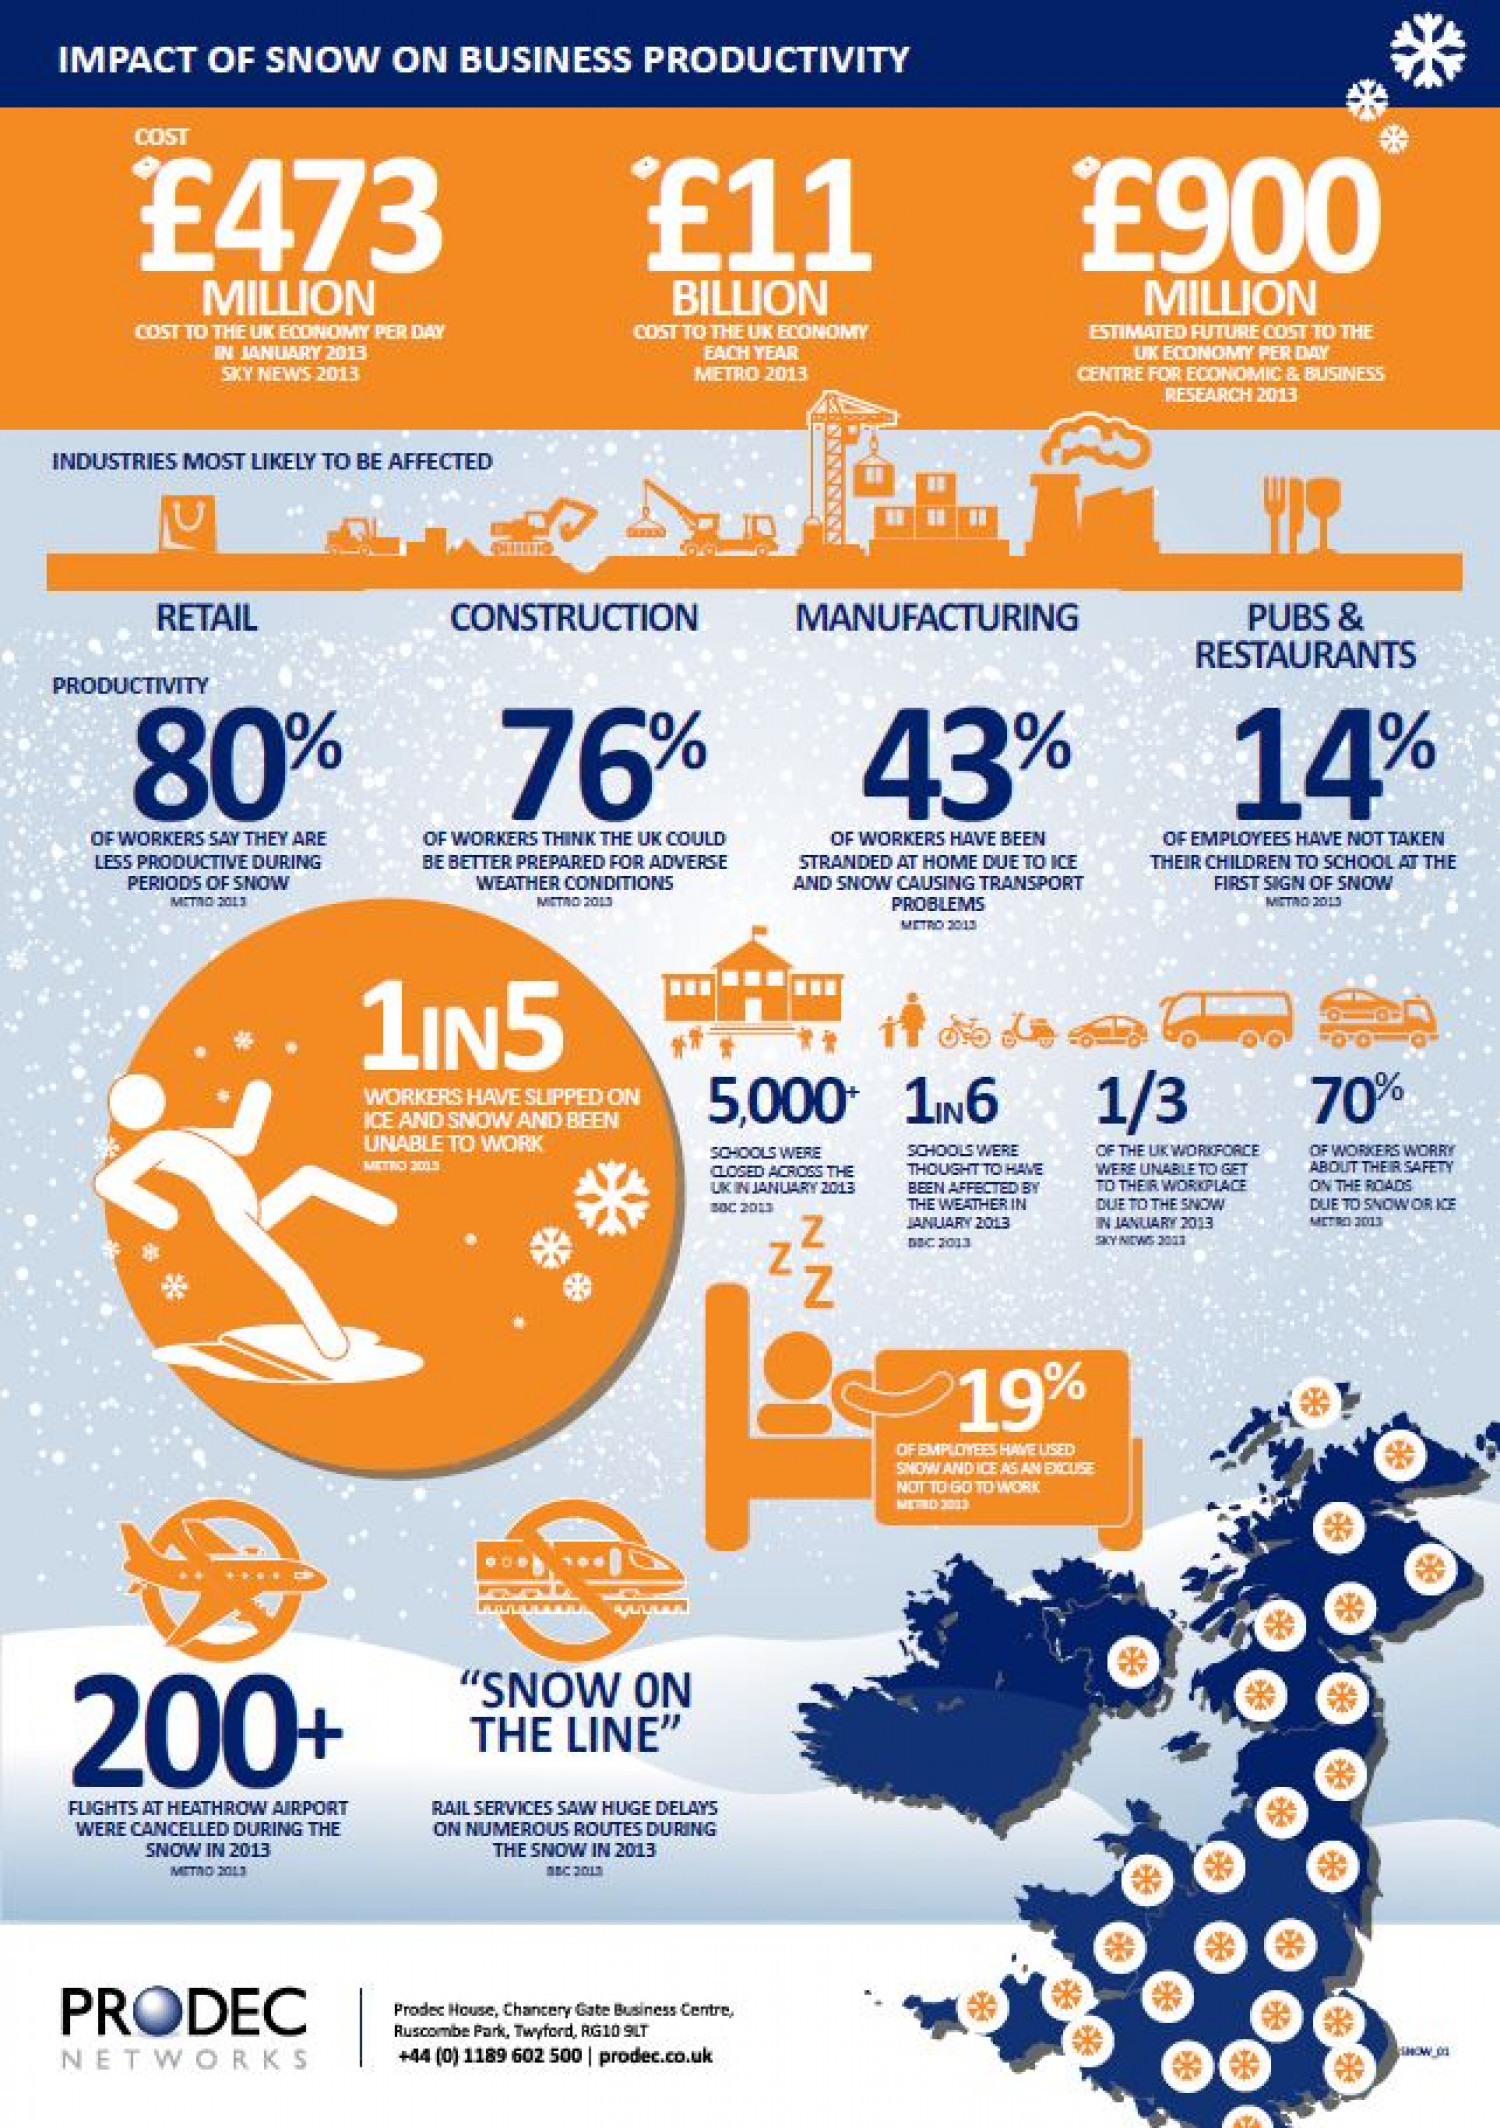 The Impact of Snow on Businesses  Infographic